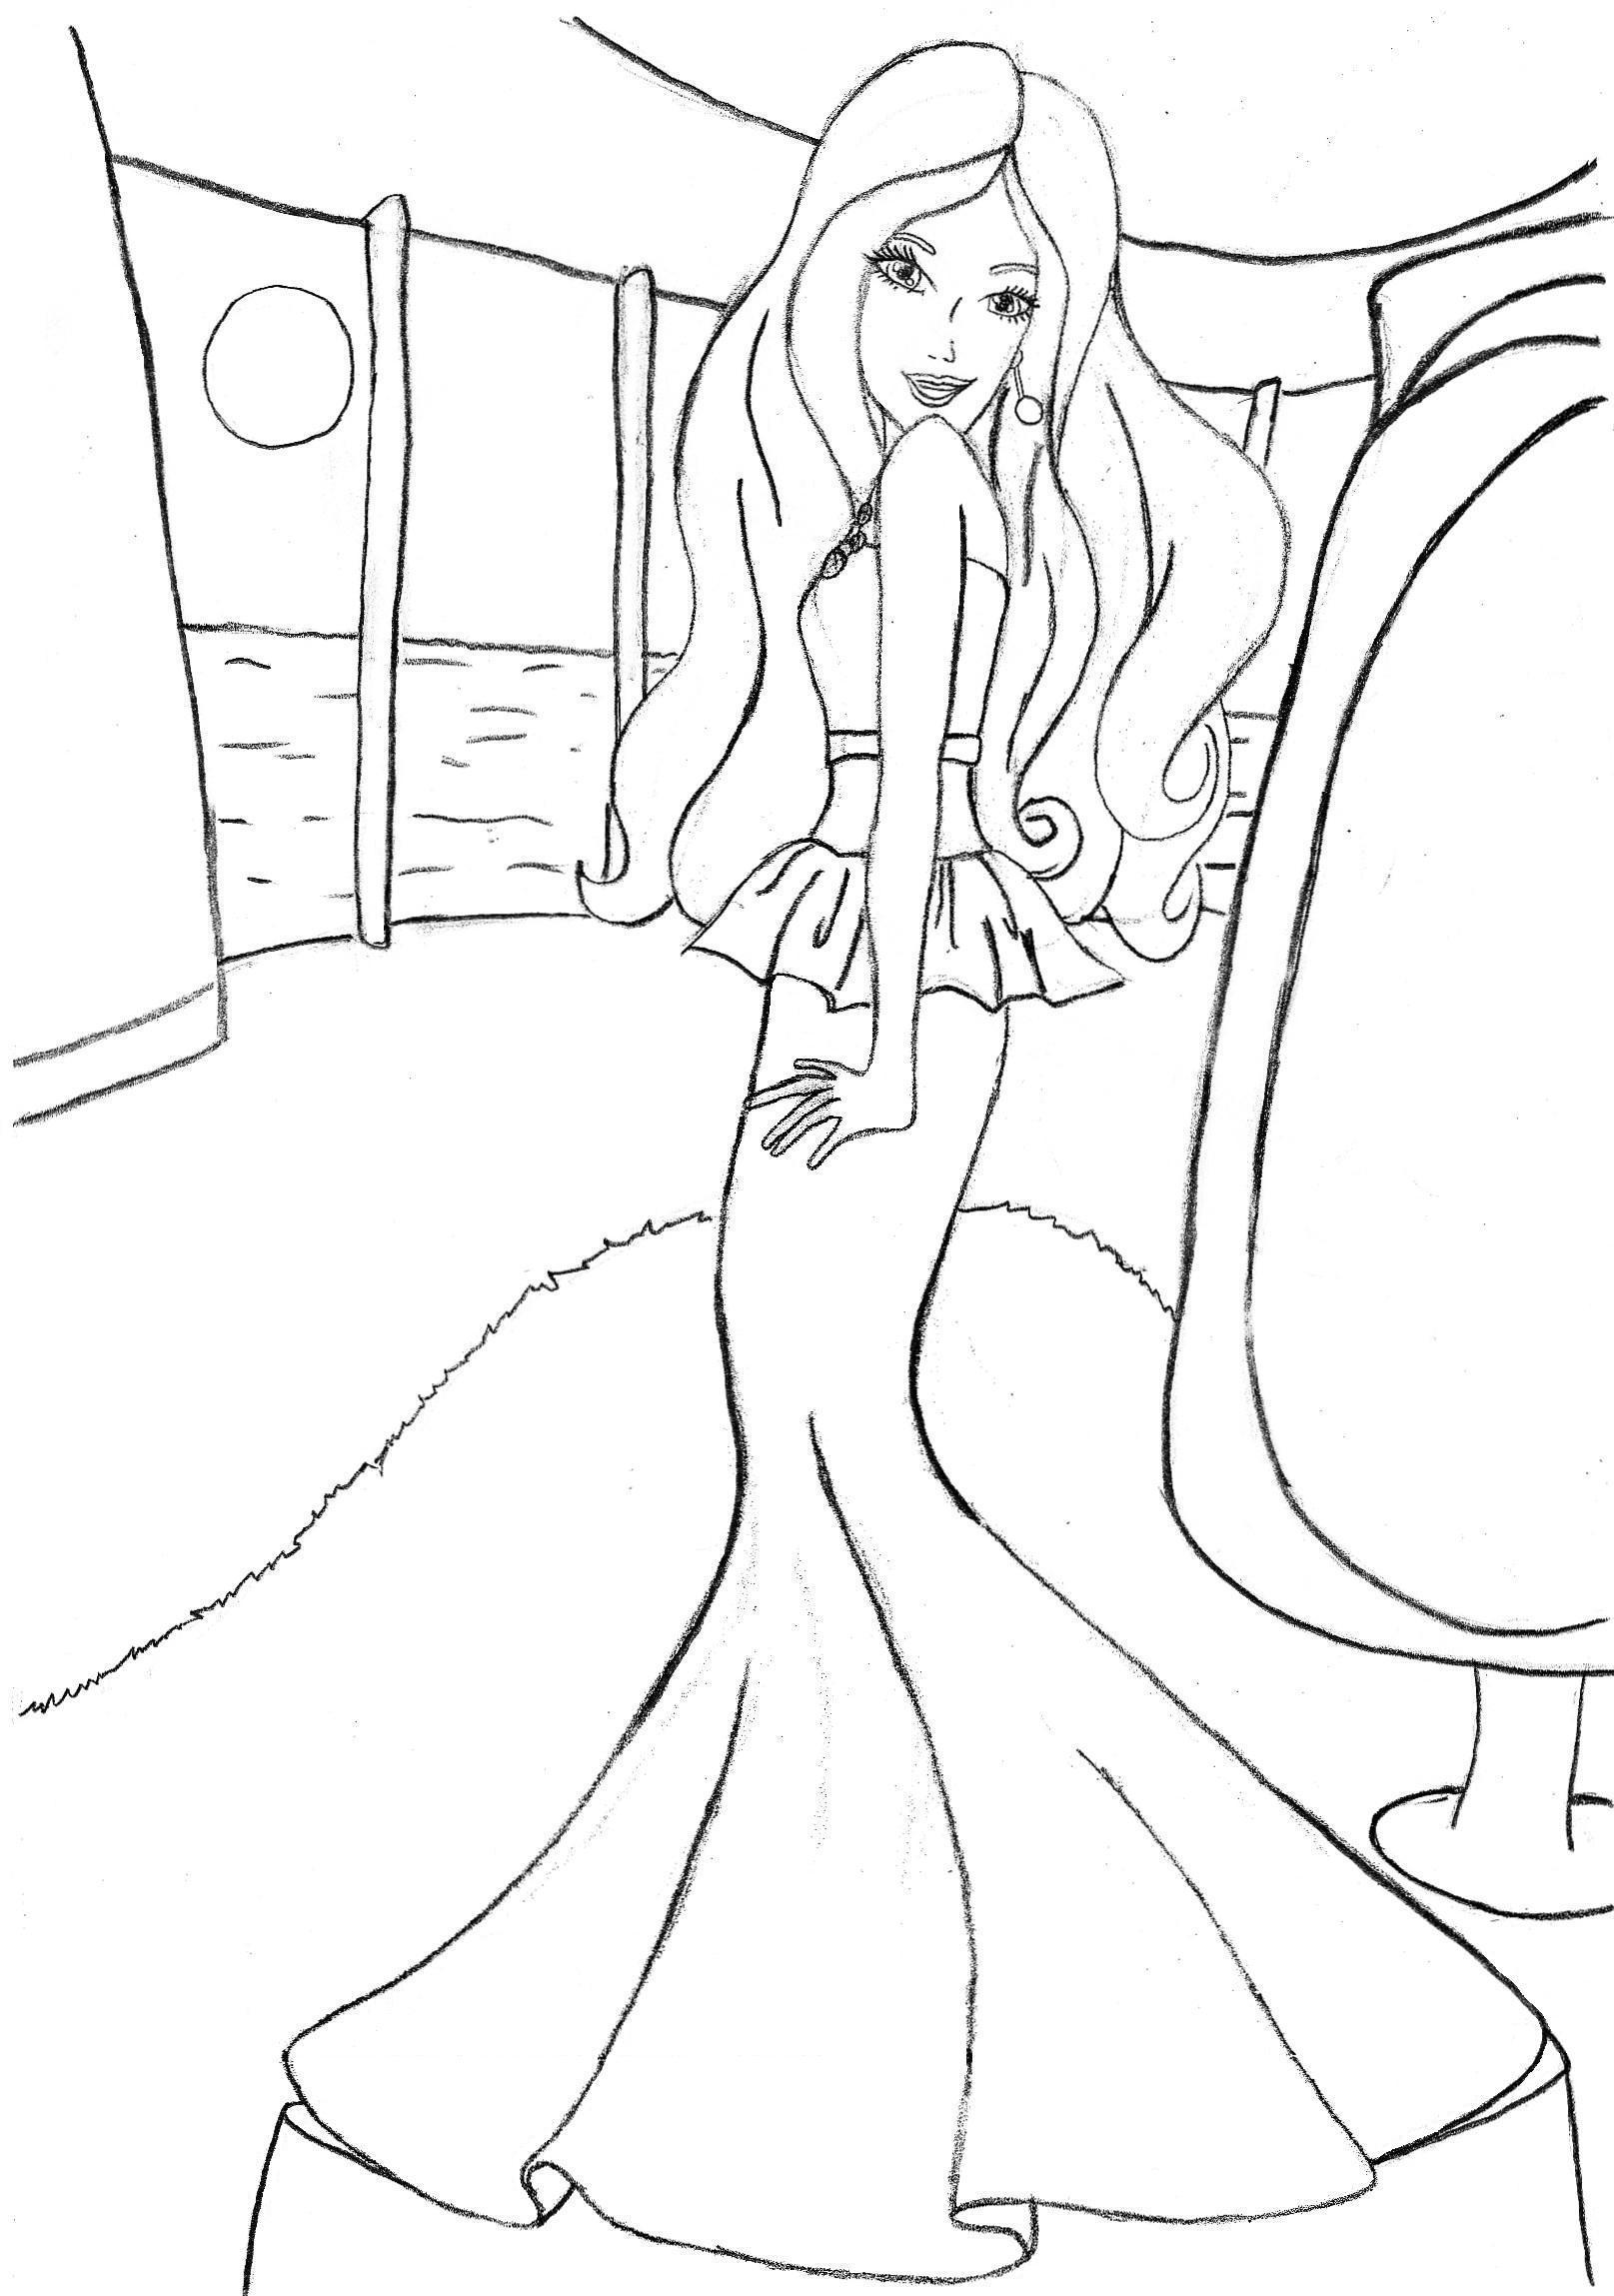 Coloring pages of princess barbie - Image Coloring Pages Online Free Printable Barbie Coloring Pages Fresh In Painting Free Coloring Kids Jpg Barbie Movies Wiki Fandom Powered By Wikia